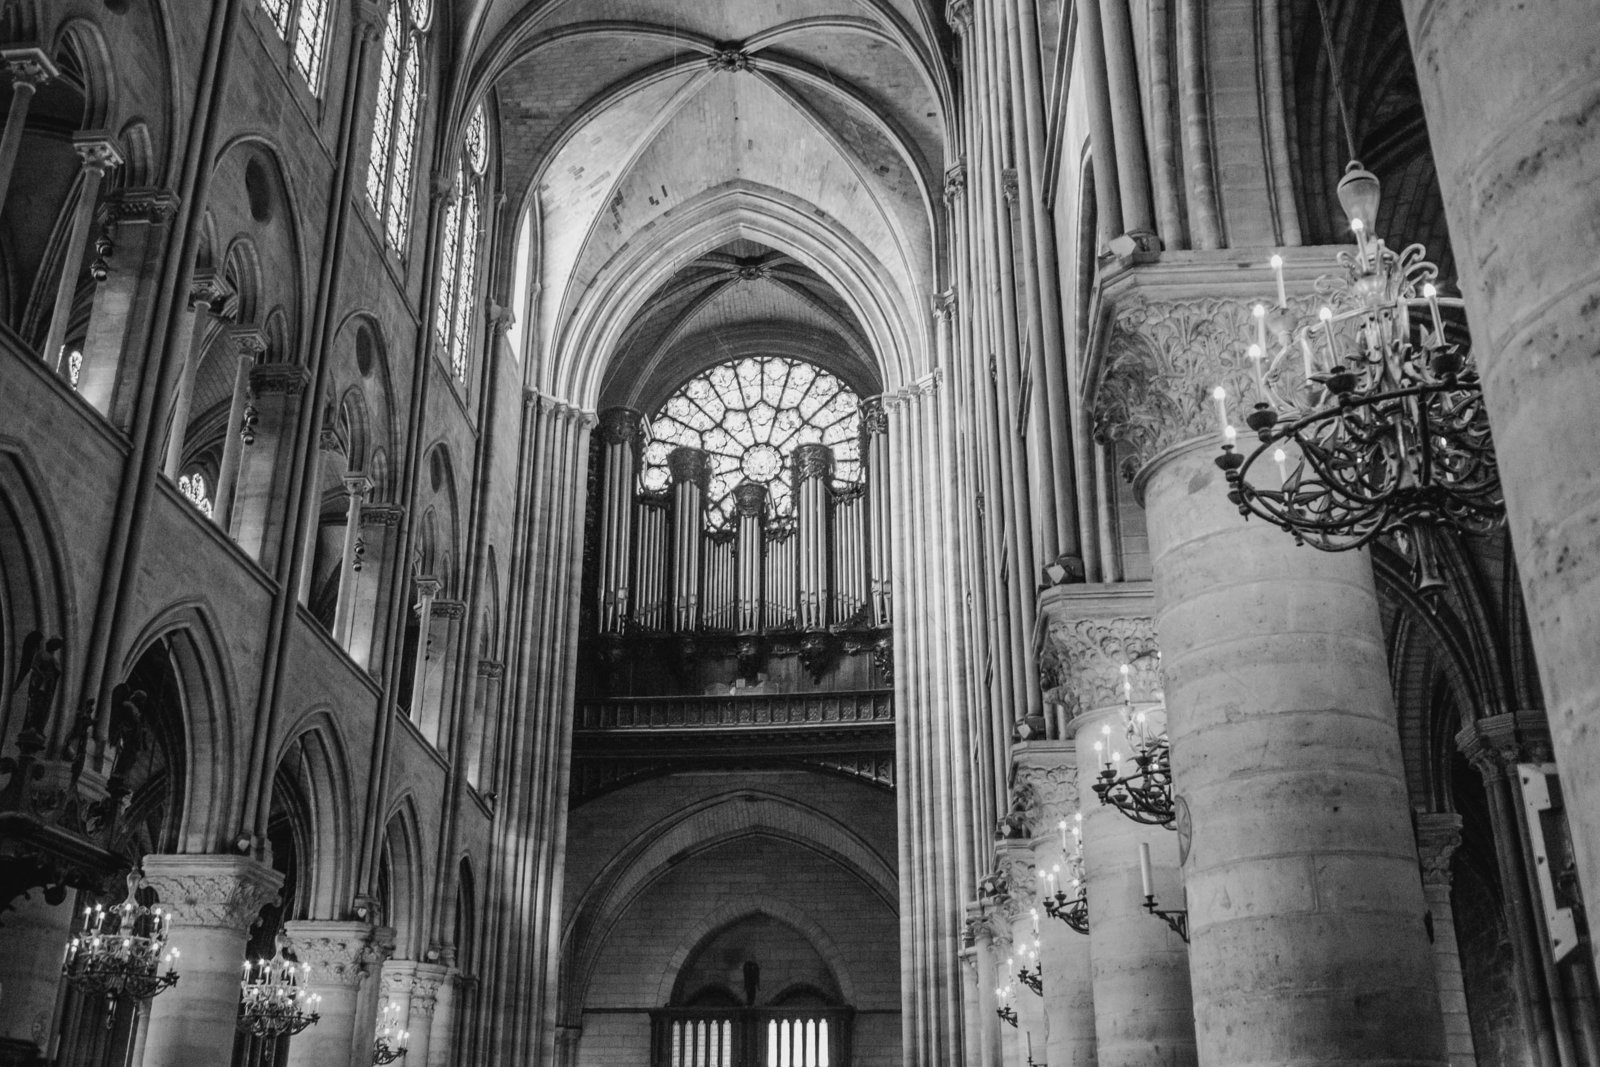 notre-dame-paris-france-travel-destination-wedding-kate-timbers-photography-1921